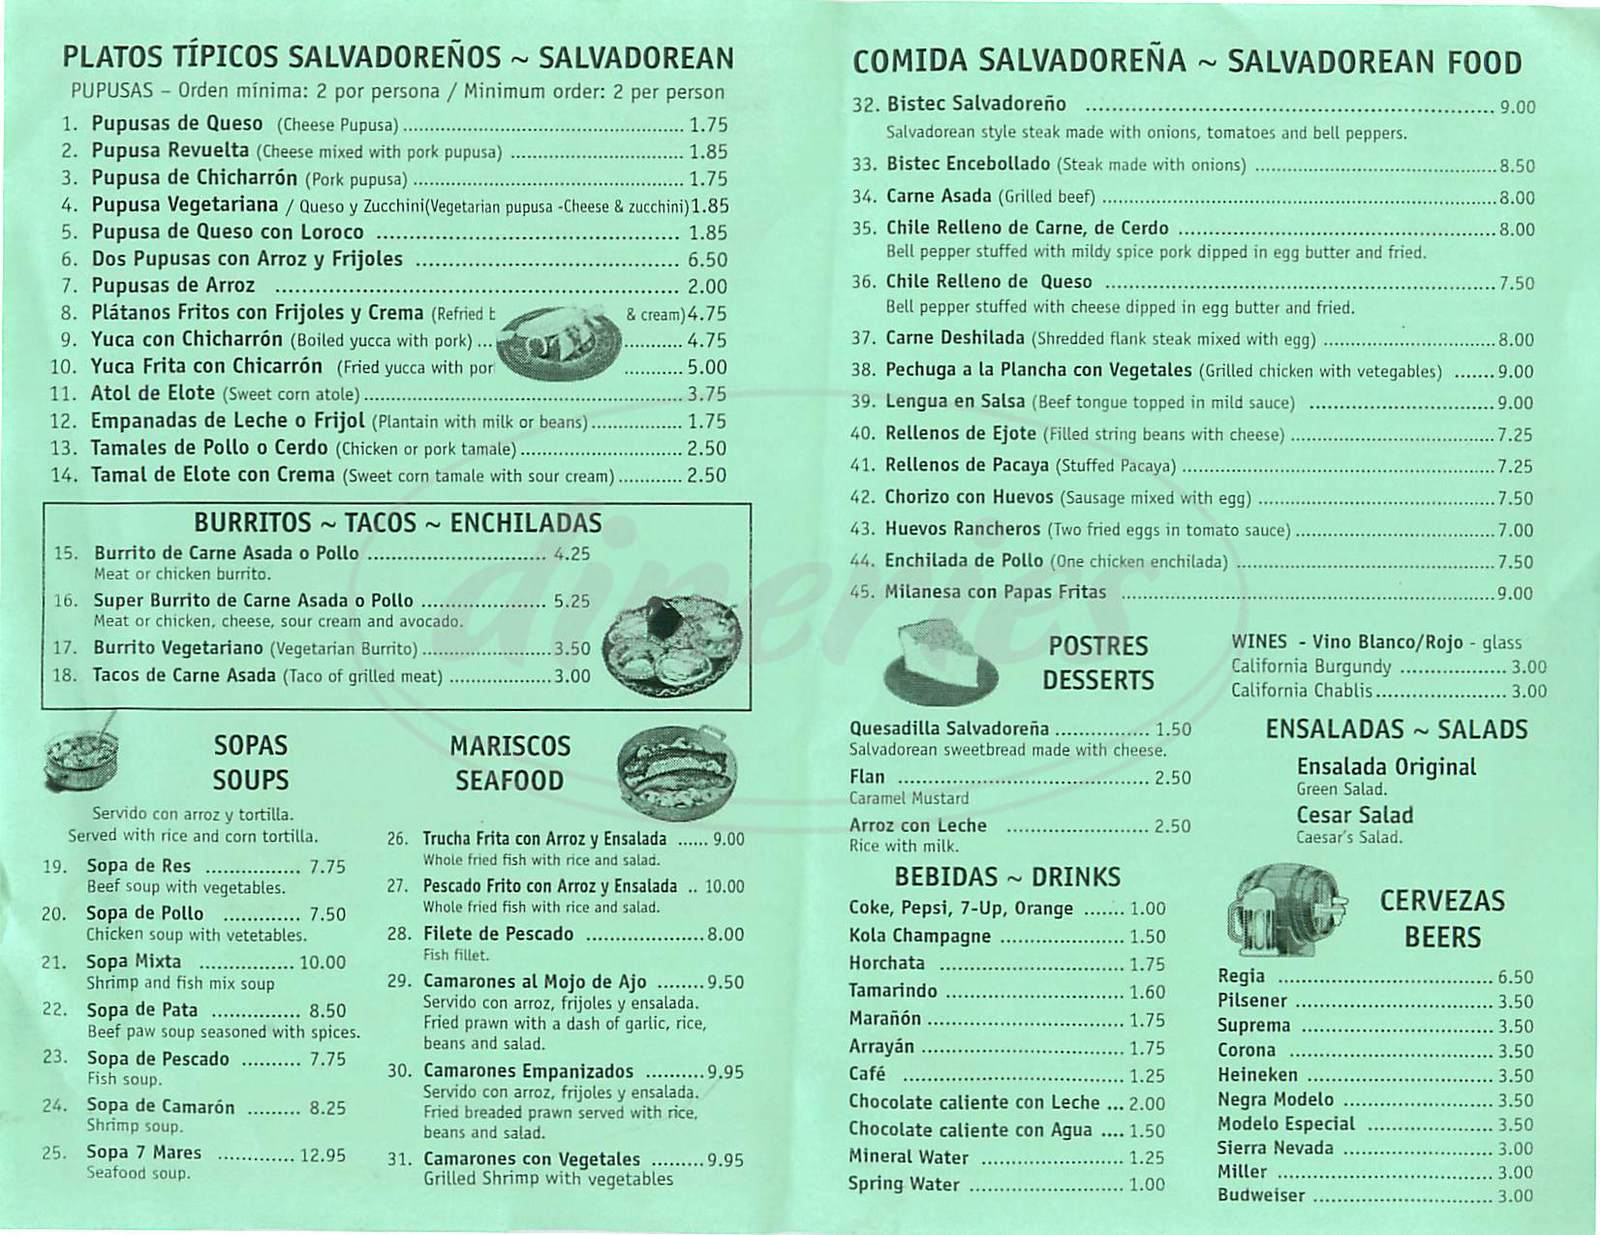 menu for El Majahual